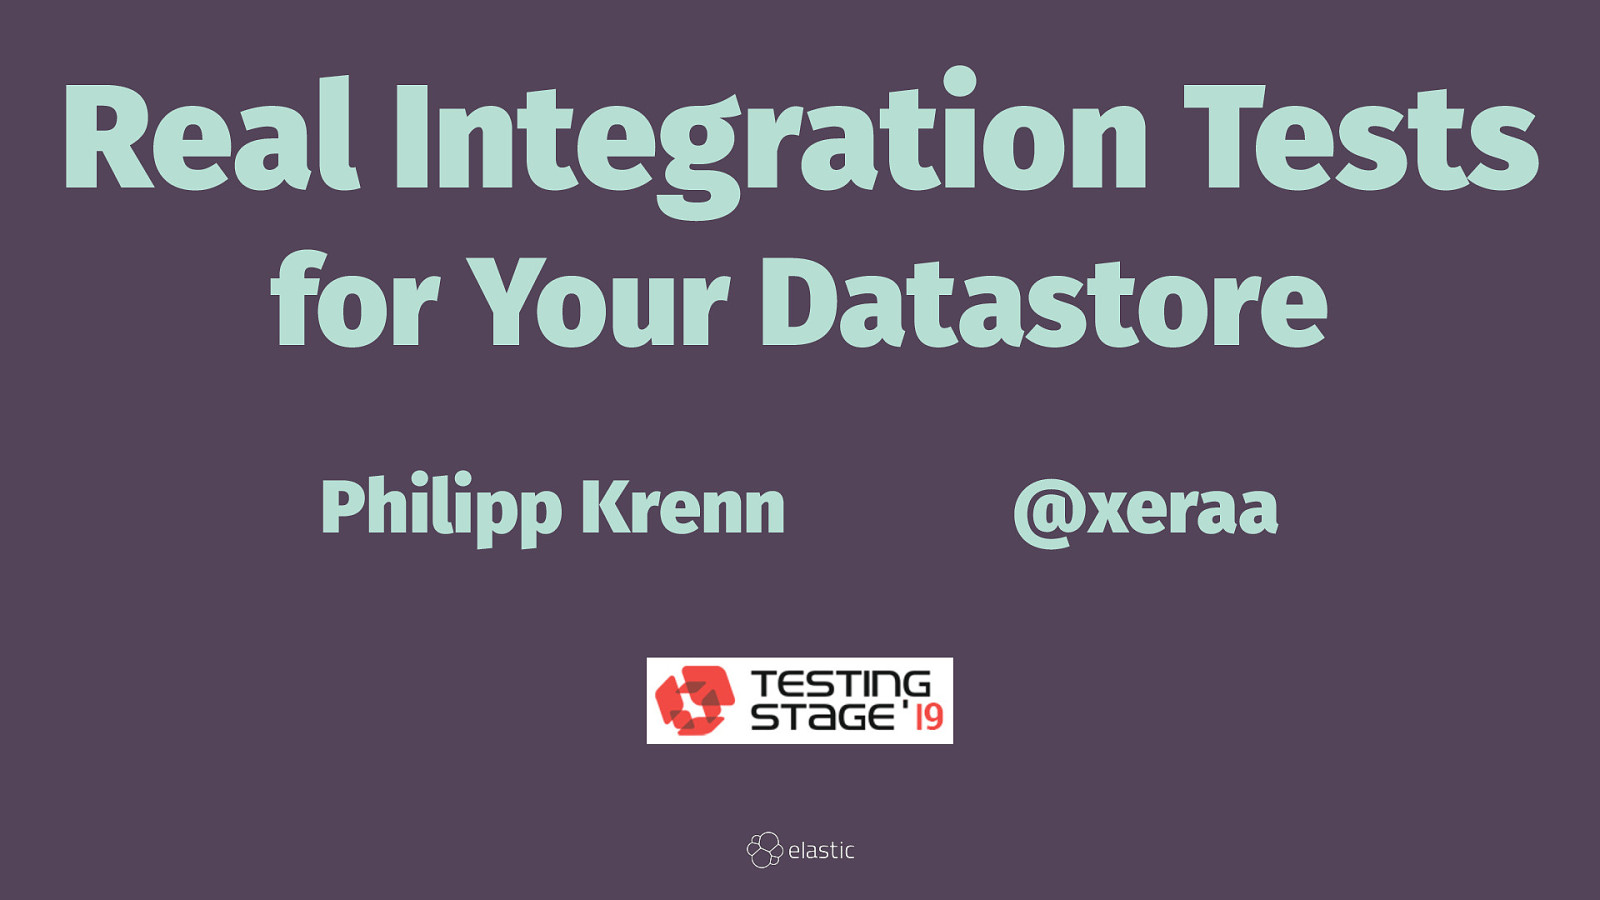 Real Integration Tests for Your Datastore